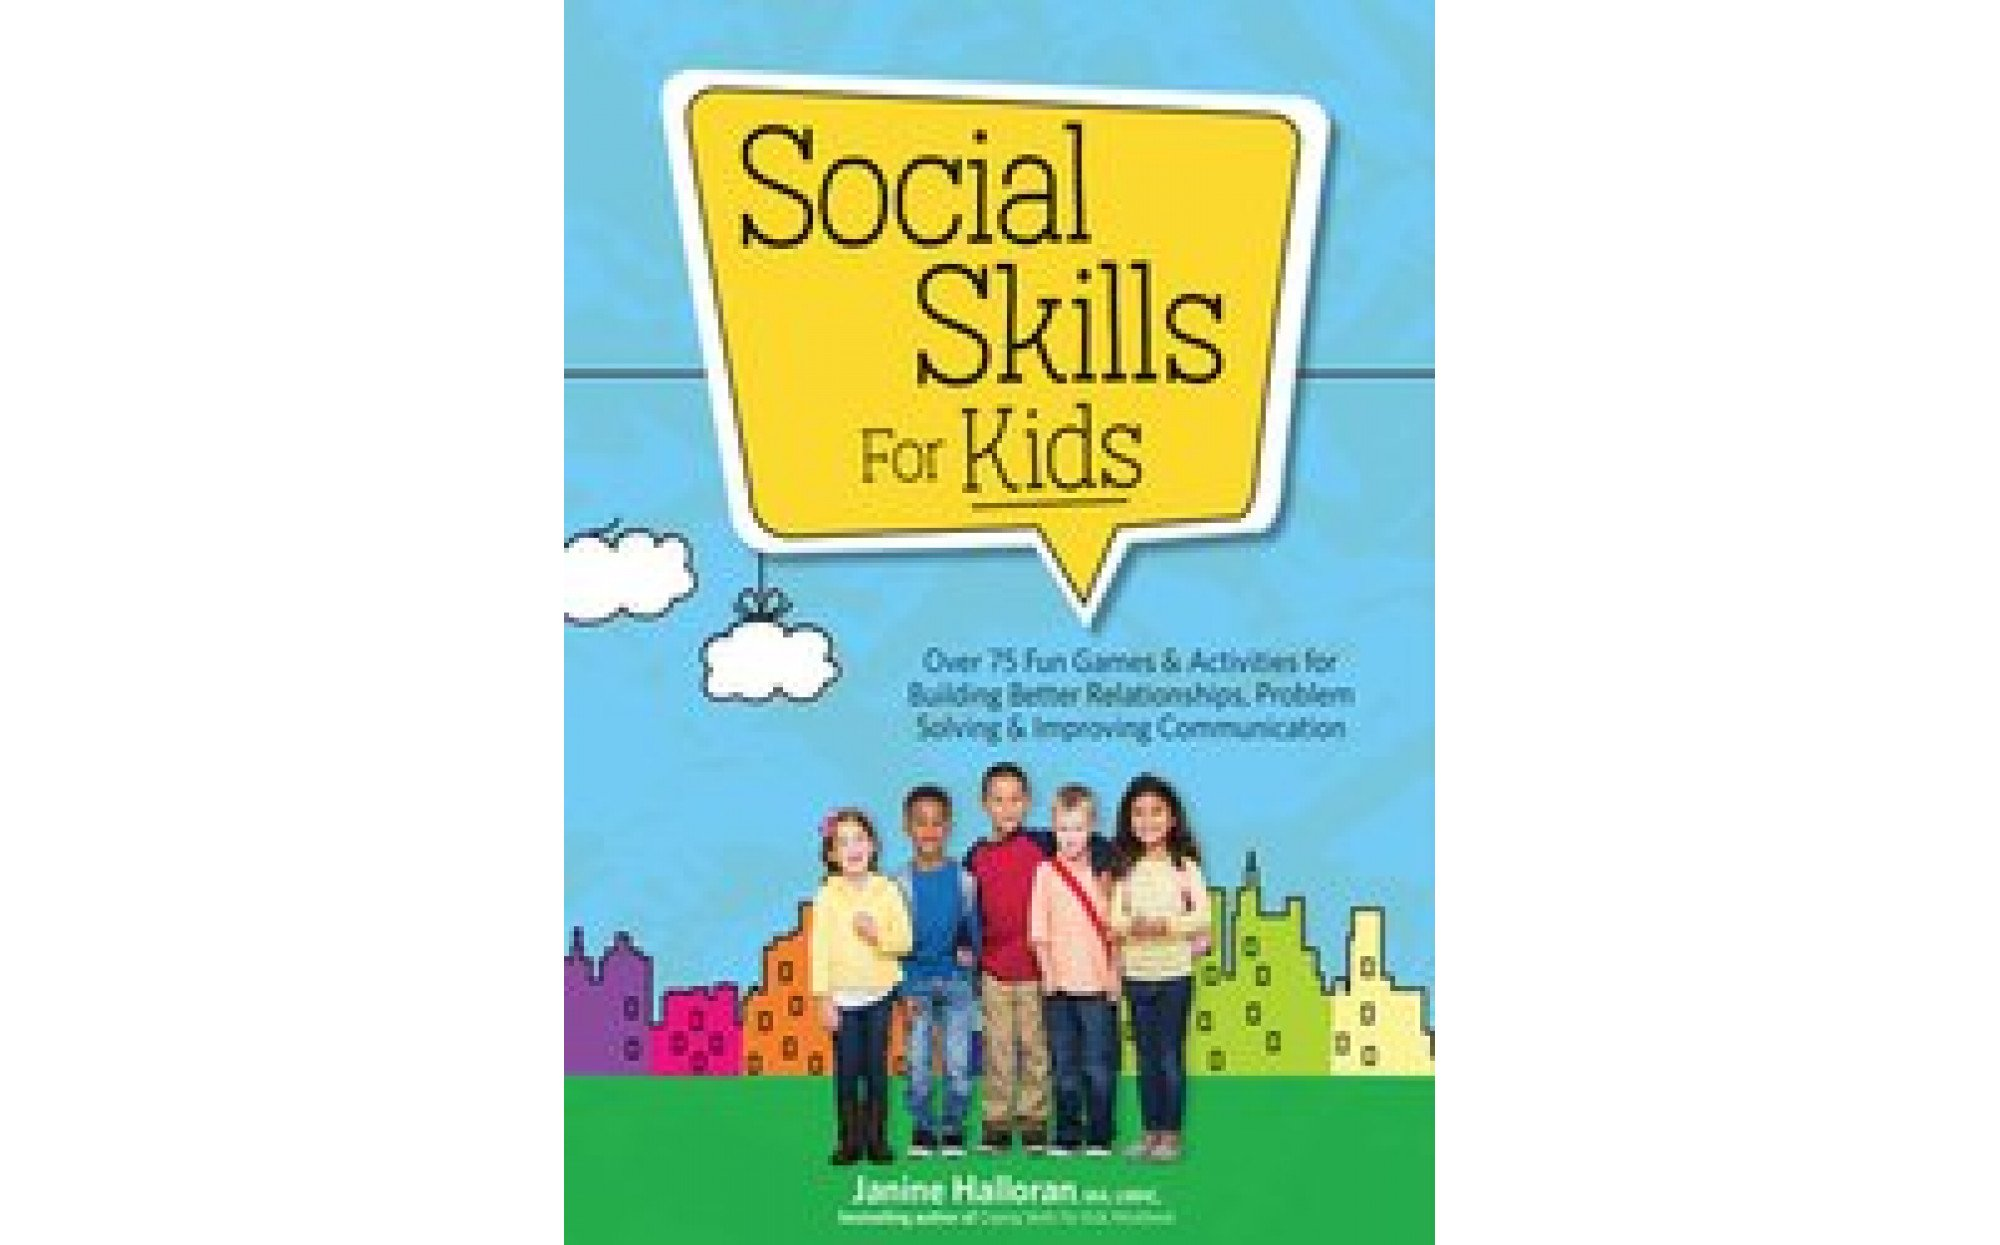 Social Skills For Kids Over 75 Fun Games Amp Activities For